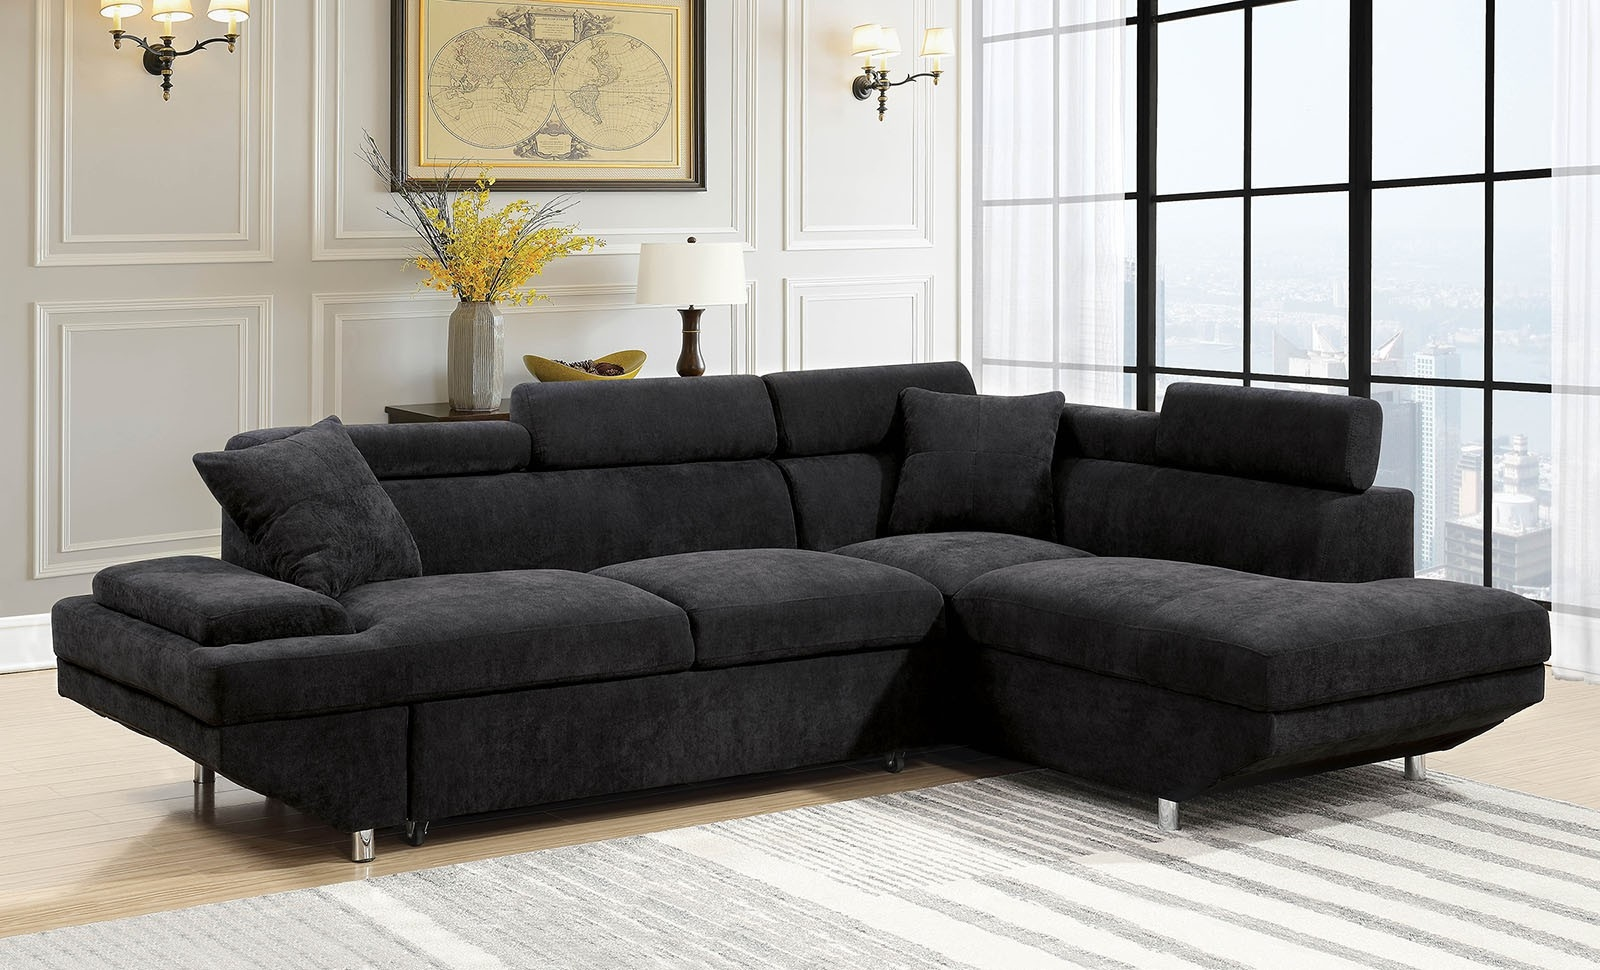 - Modern Style Flannelette Upholstered Sectional